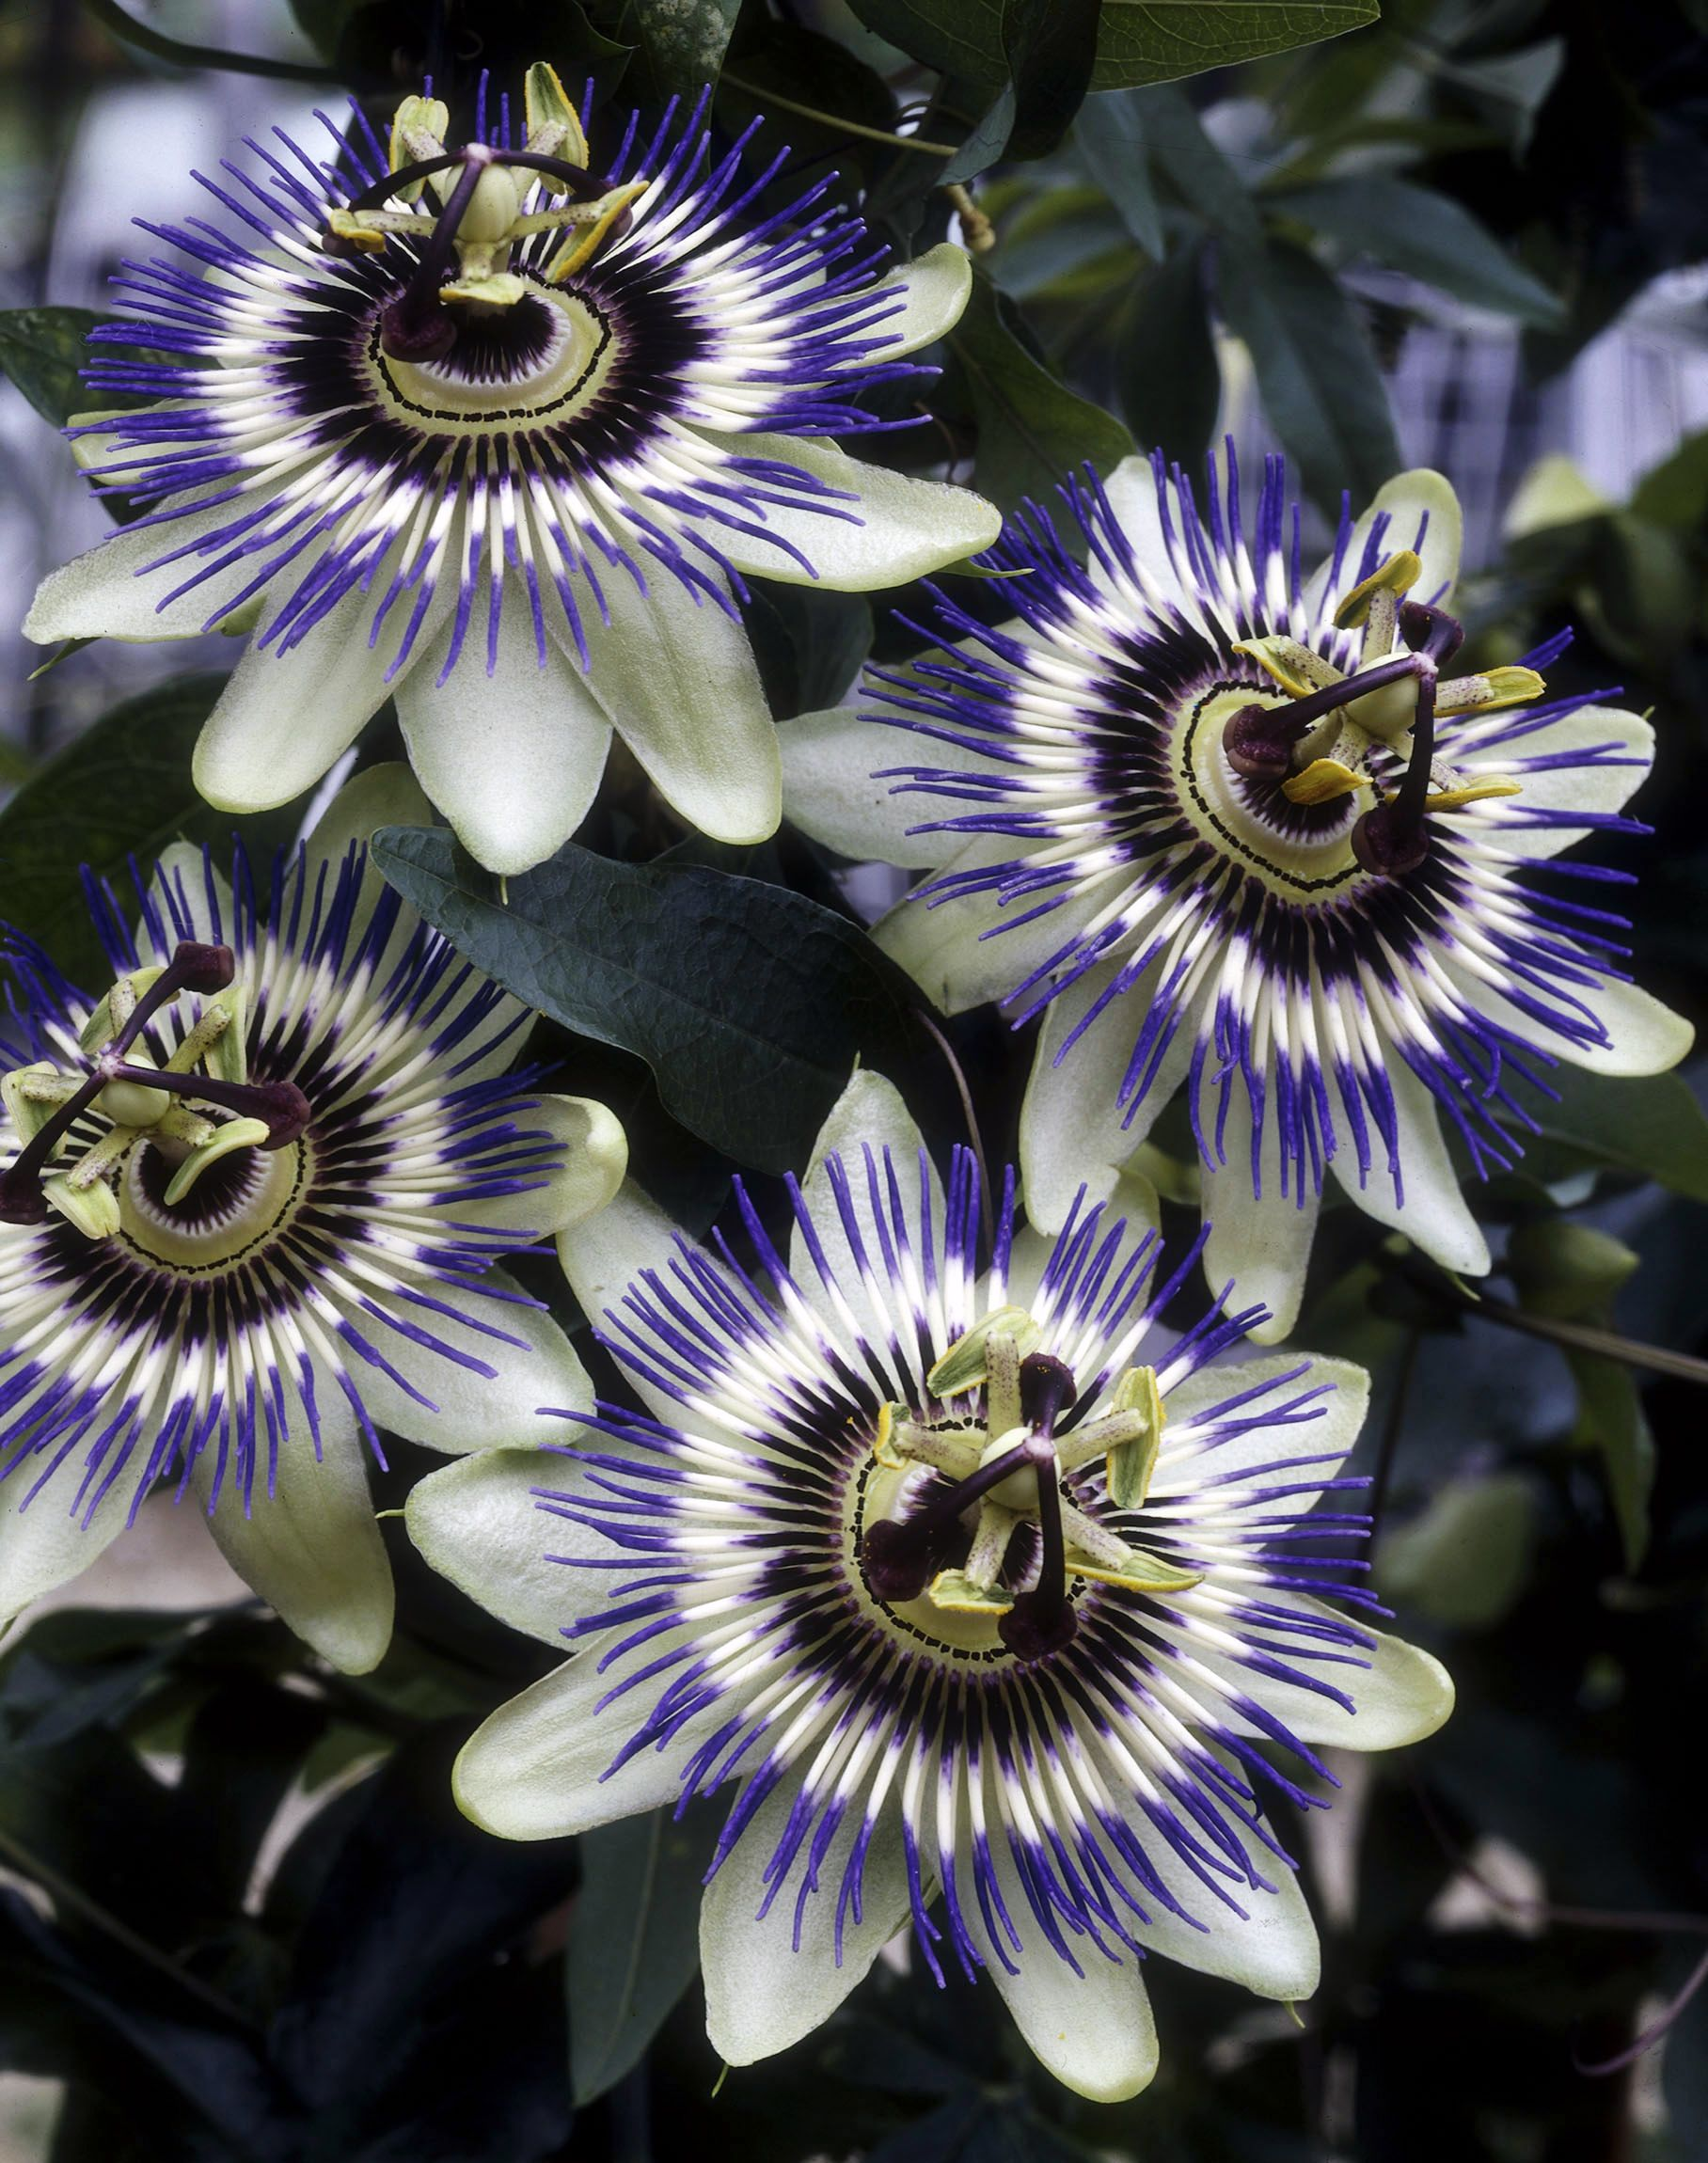 Passiflora edulis is the common hardy edible passion fruit vine passiflora edulis is the common hardy edible passion fruit vine it will produce very fragrant dhlflorist Images